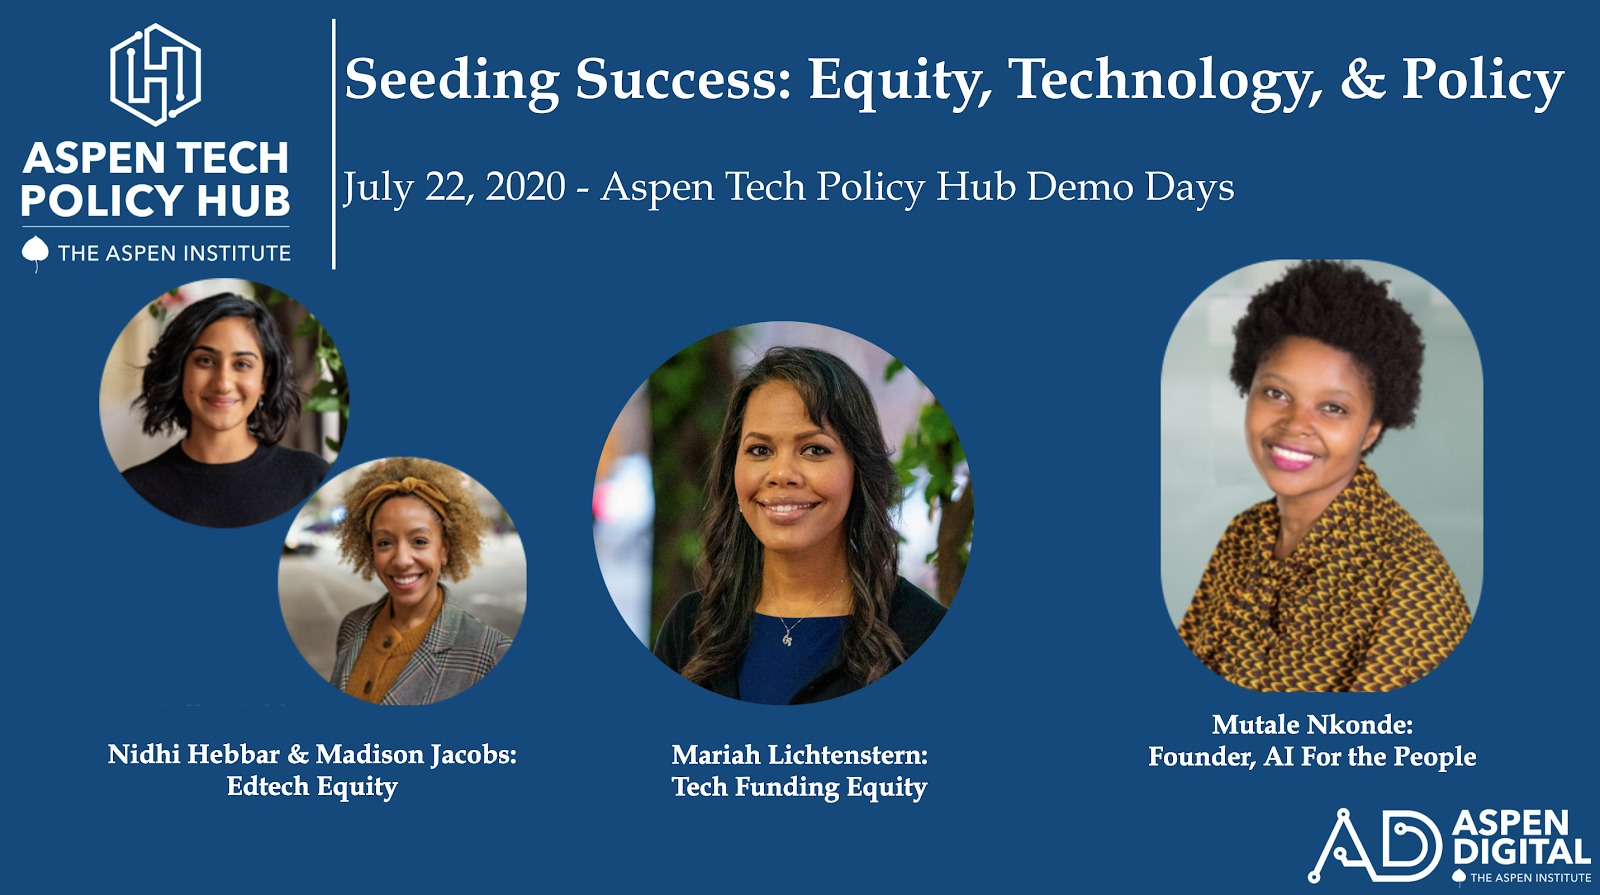 Seeding Success: Equity, Technology & Policy